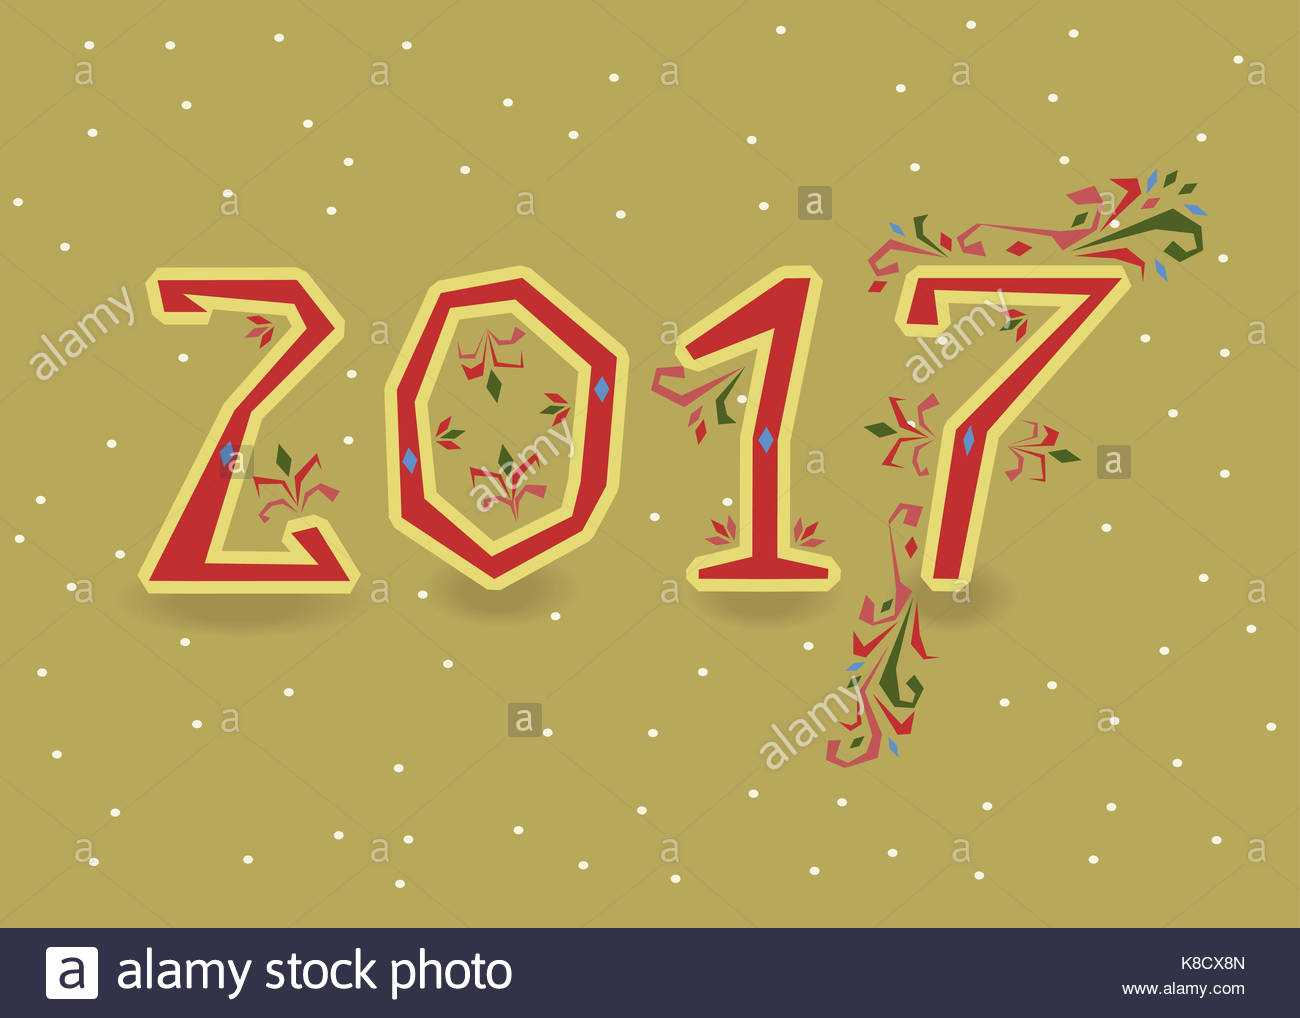 Happy New Year 2017  Calendar template  Red  hand drawn symbols with     Happy New Year 2017  Calendar template  Red  hand drawn symbols with floral  decor  Country font  Celebration background with confetti  Greeting card